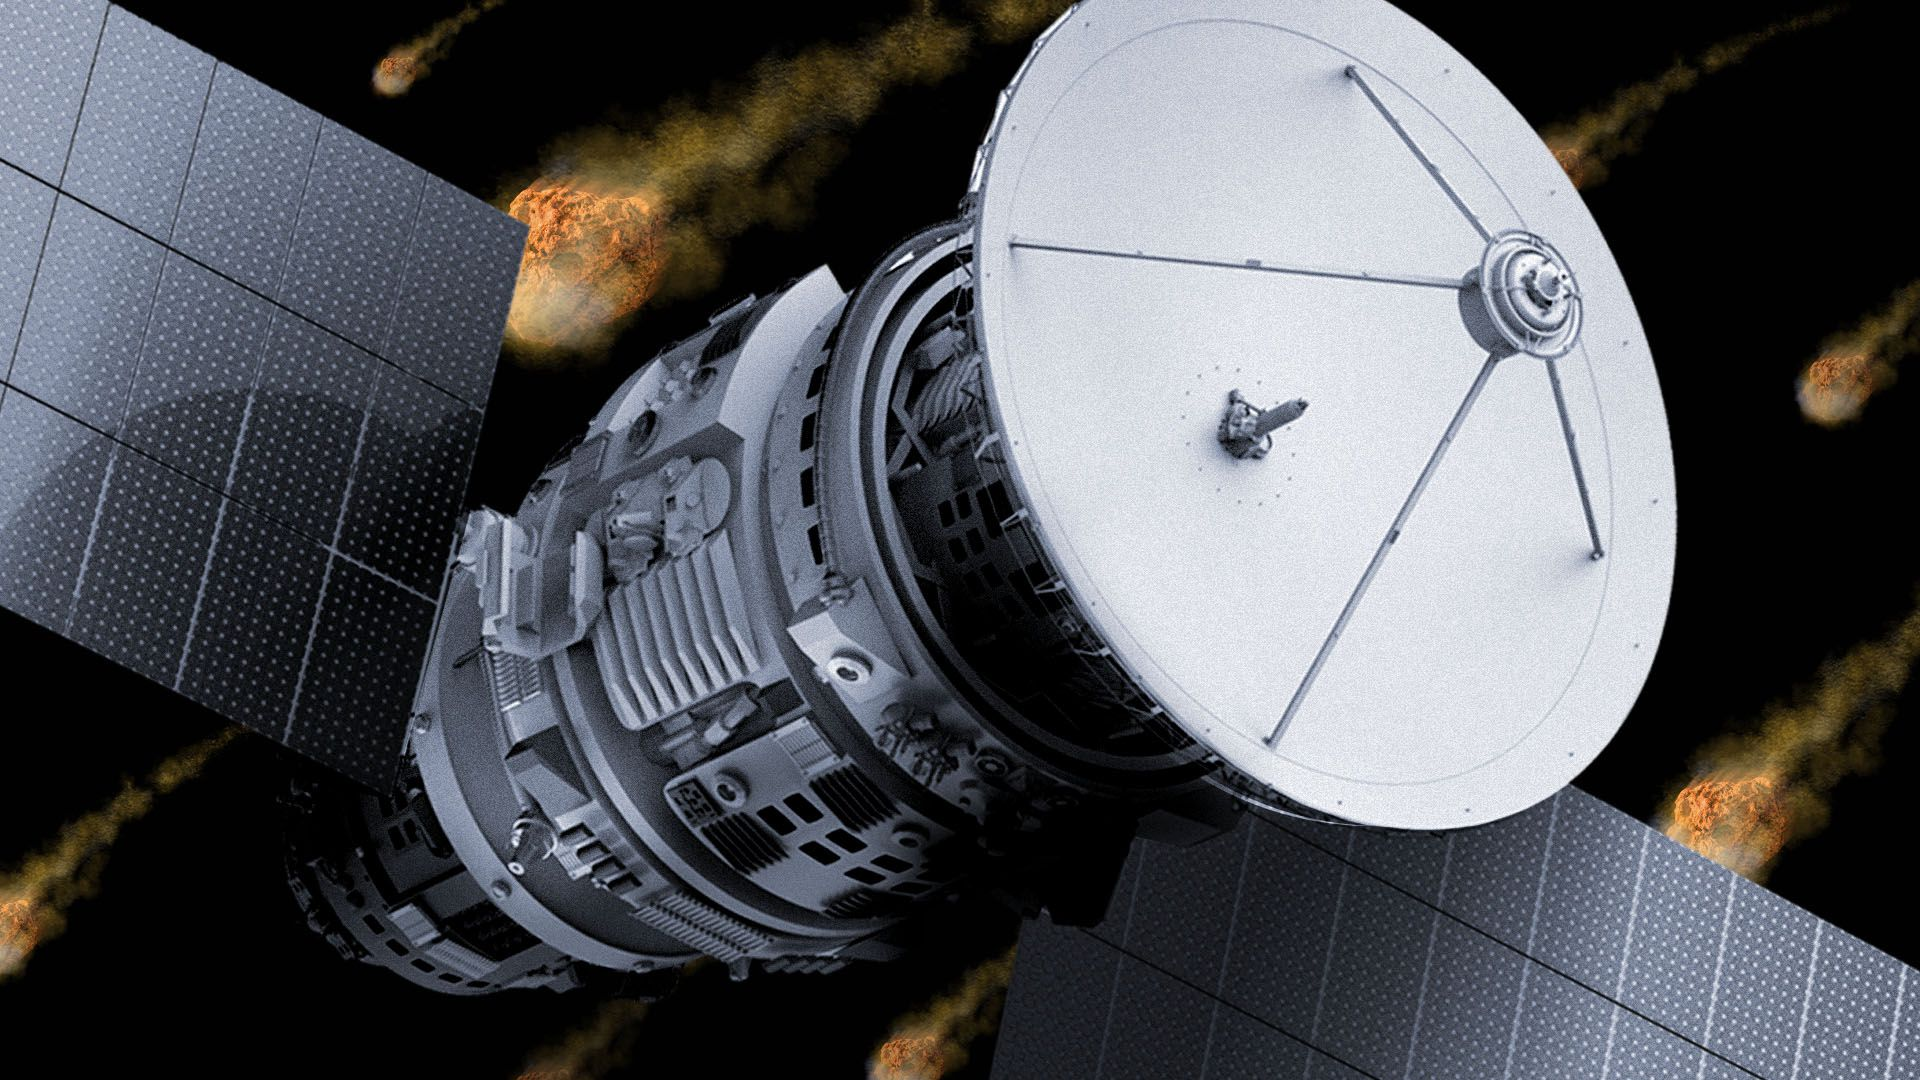 Illustration of a satellite blocking the view of many asteroids in the background